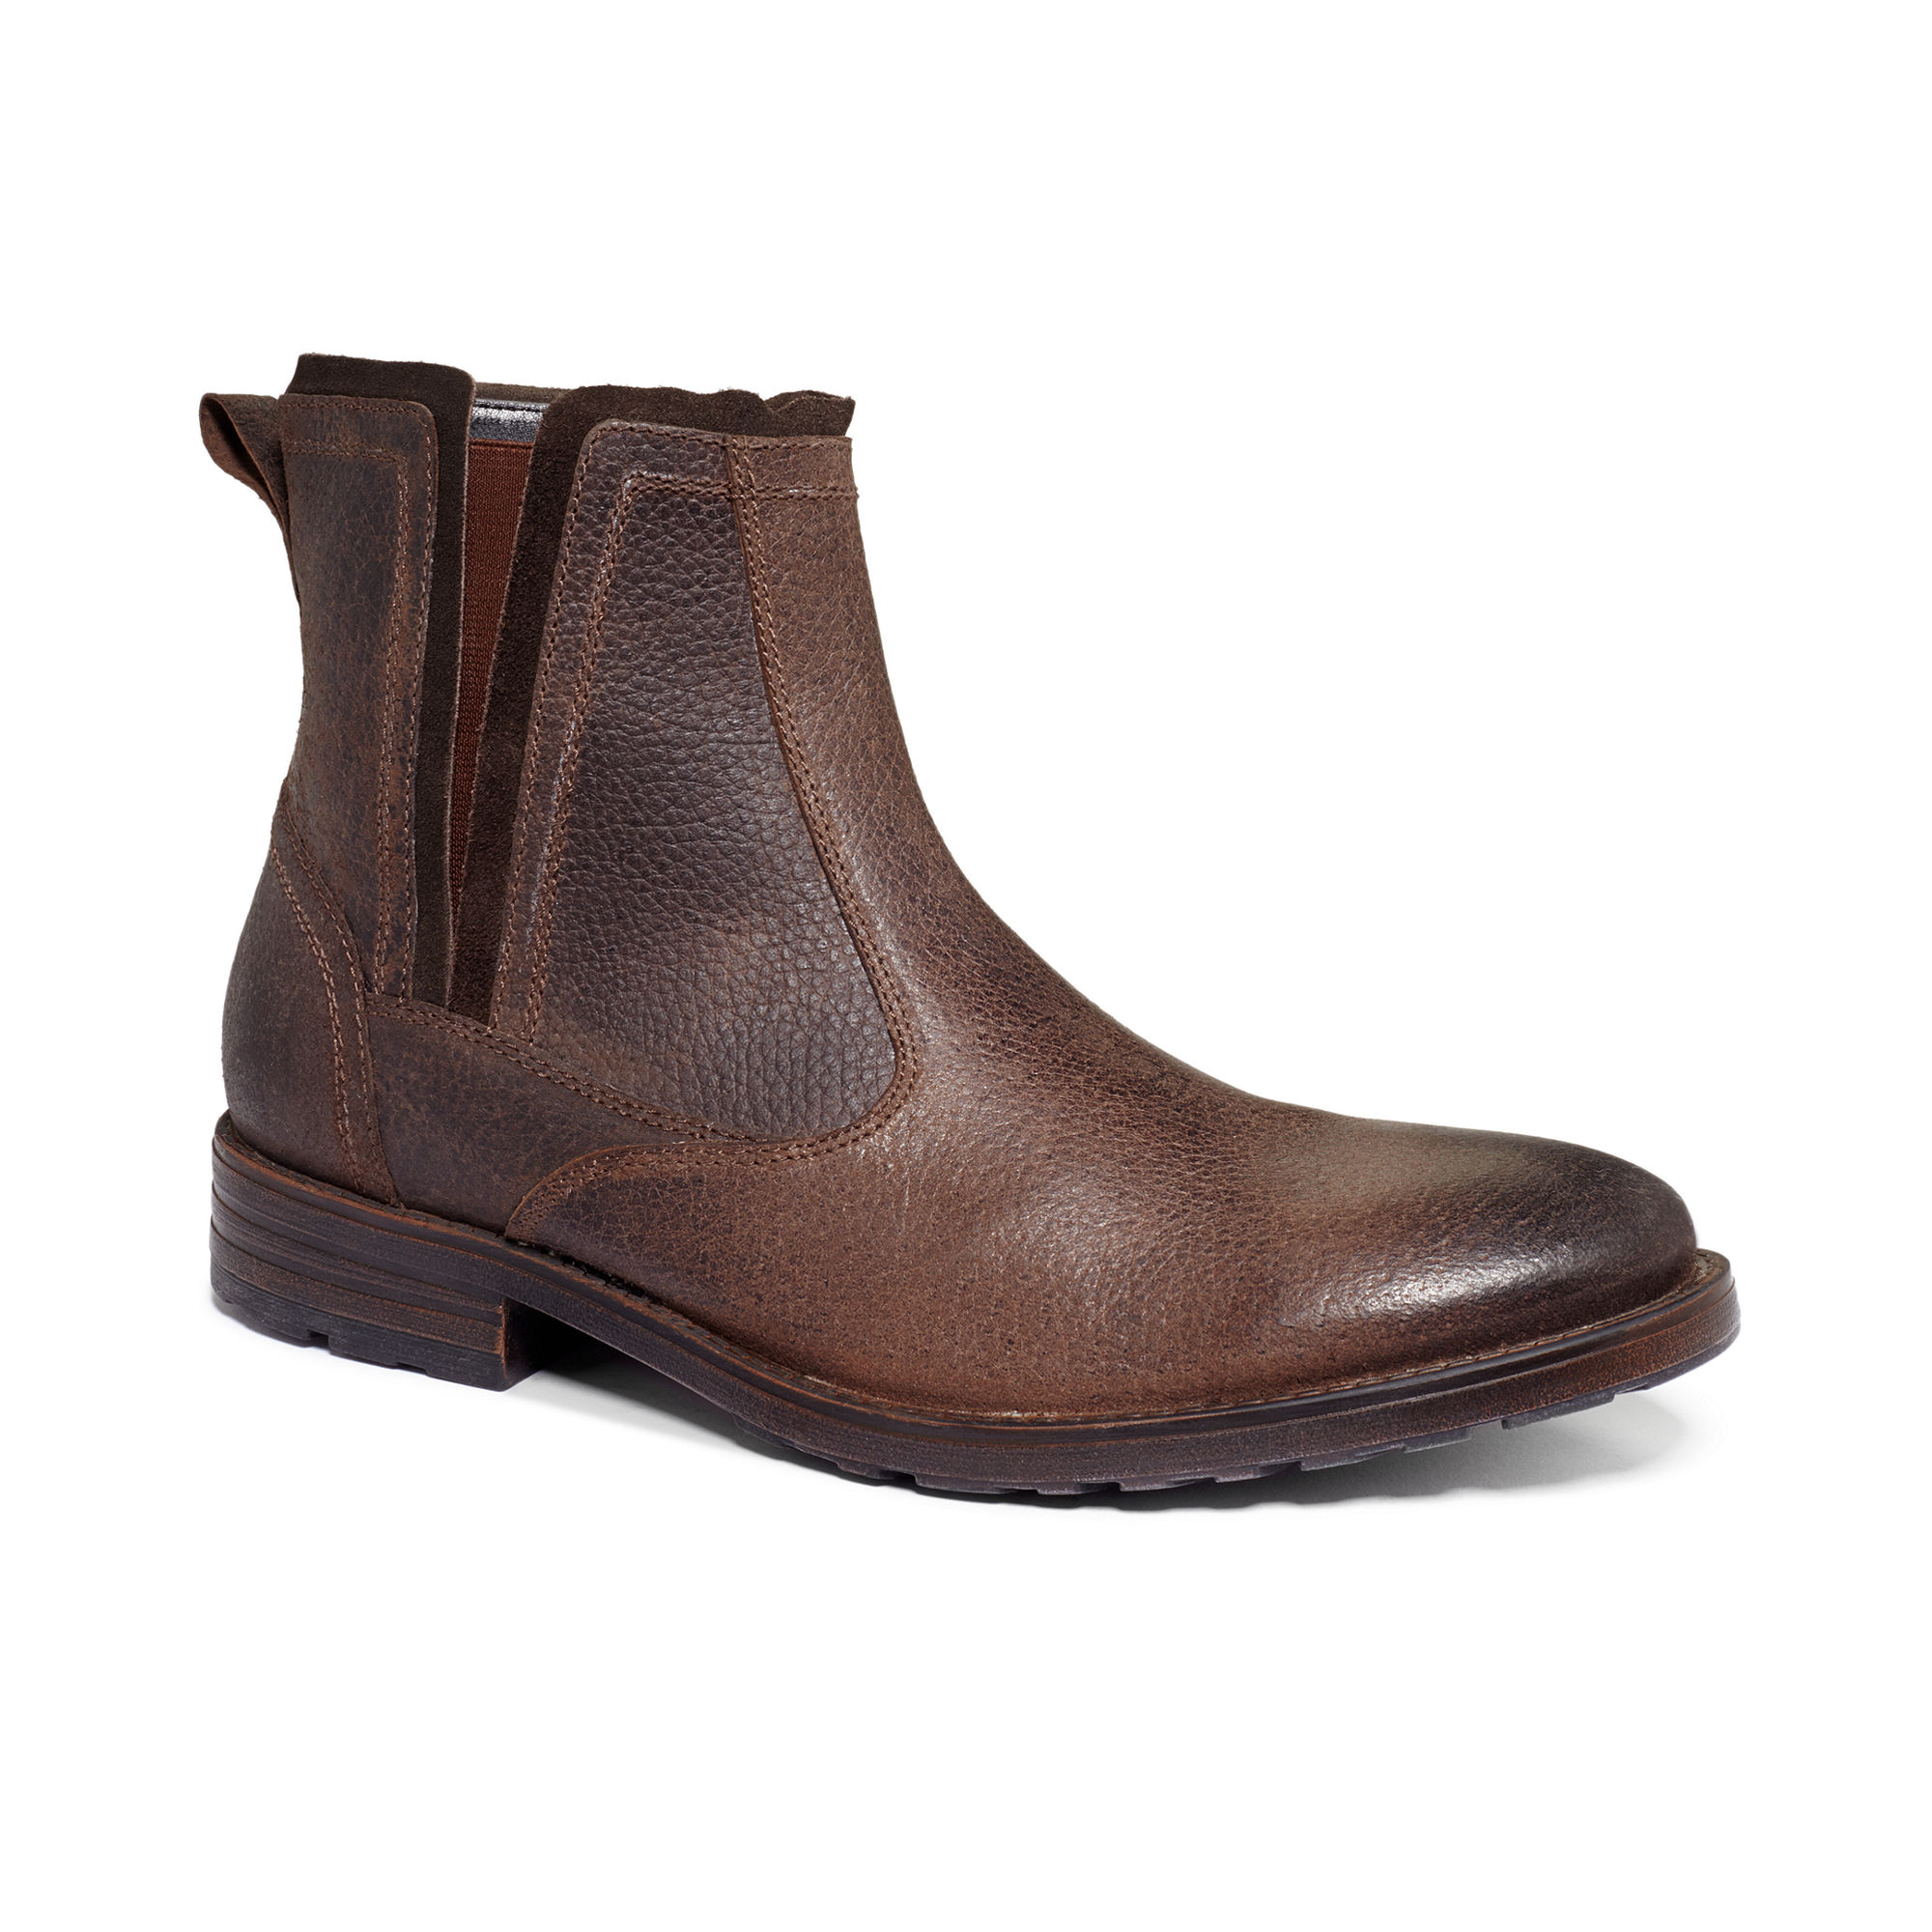 clarks denton clas slipon boots in brown for lyst